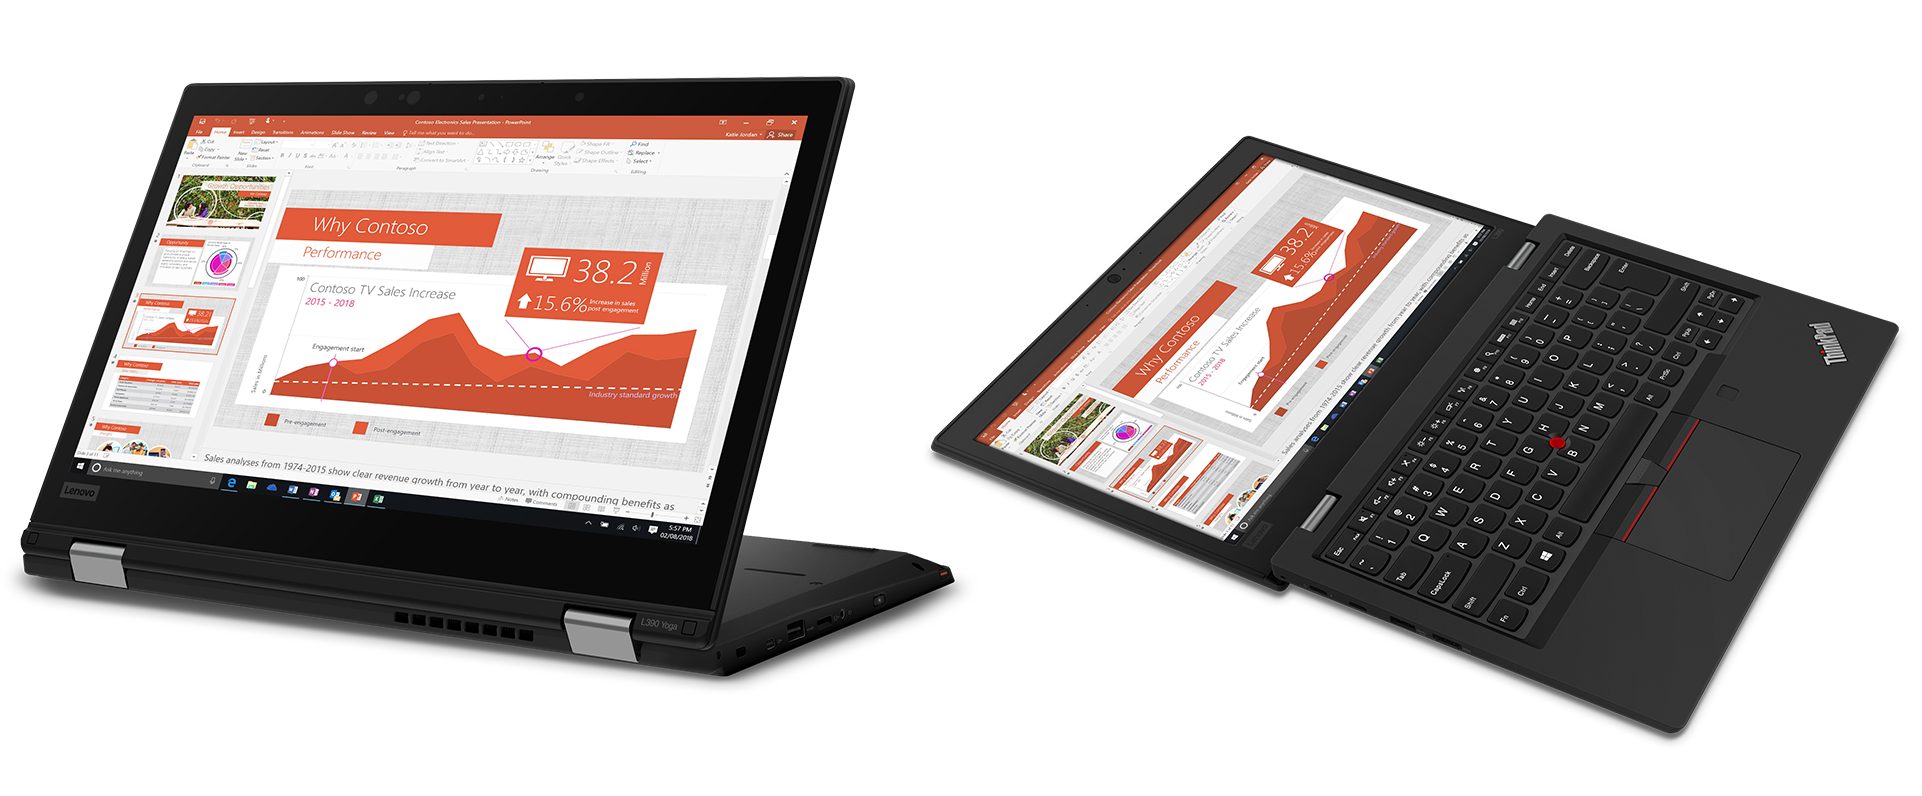 No feature updates on my Lenovo Yoga since May 2018 Lenovo-side-by-side.png